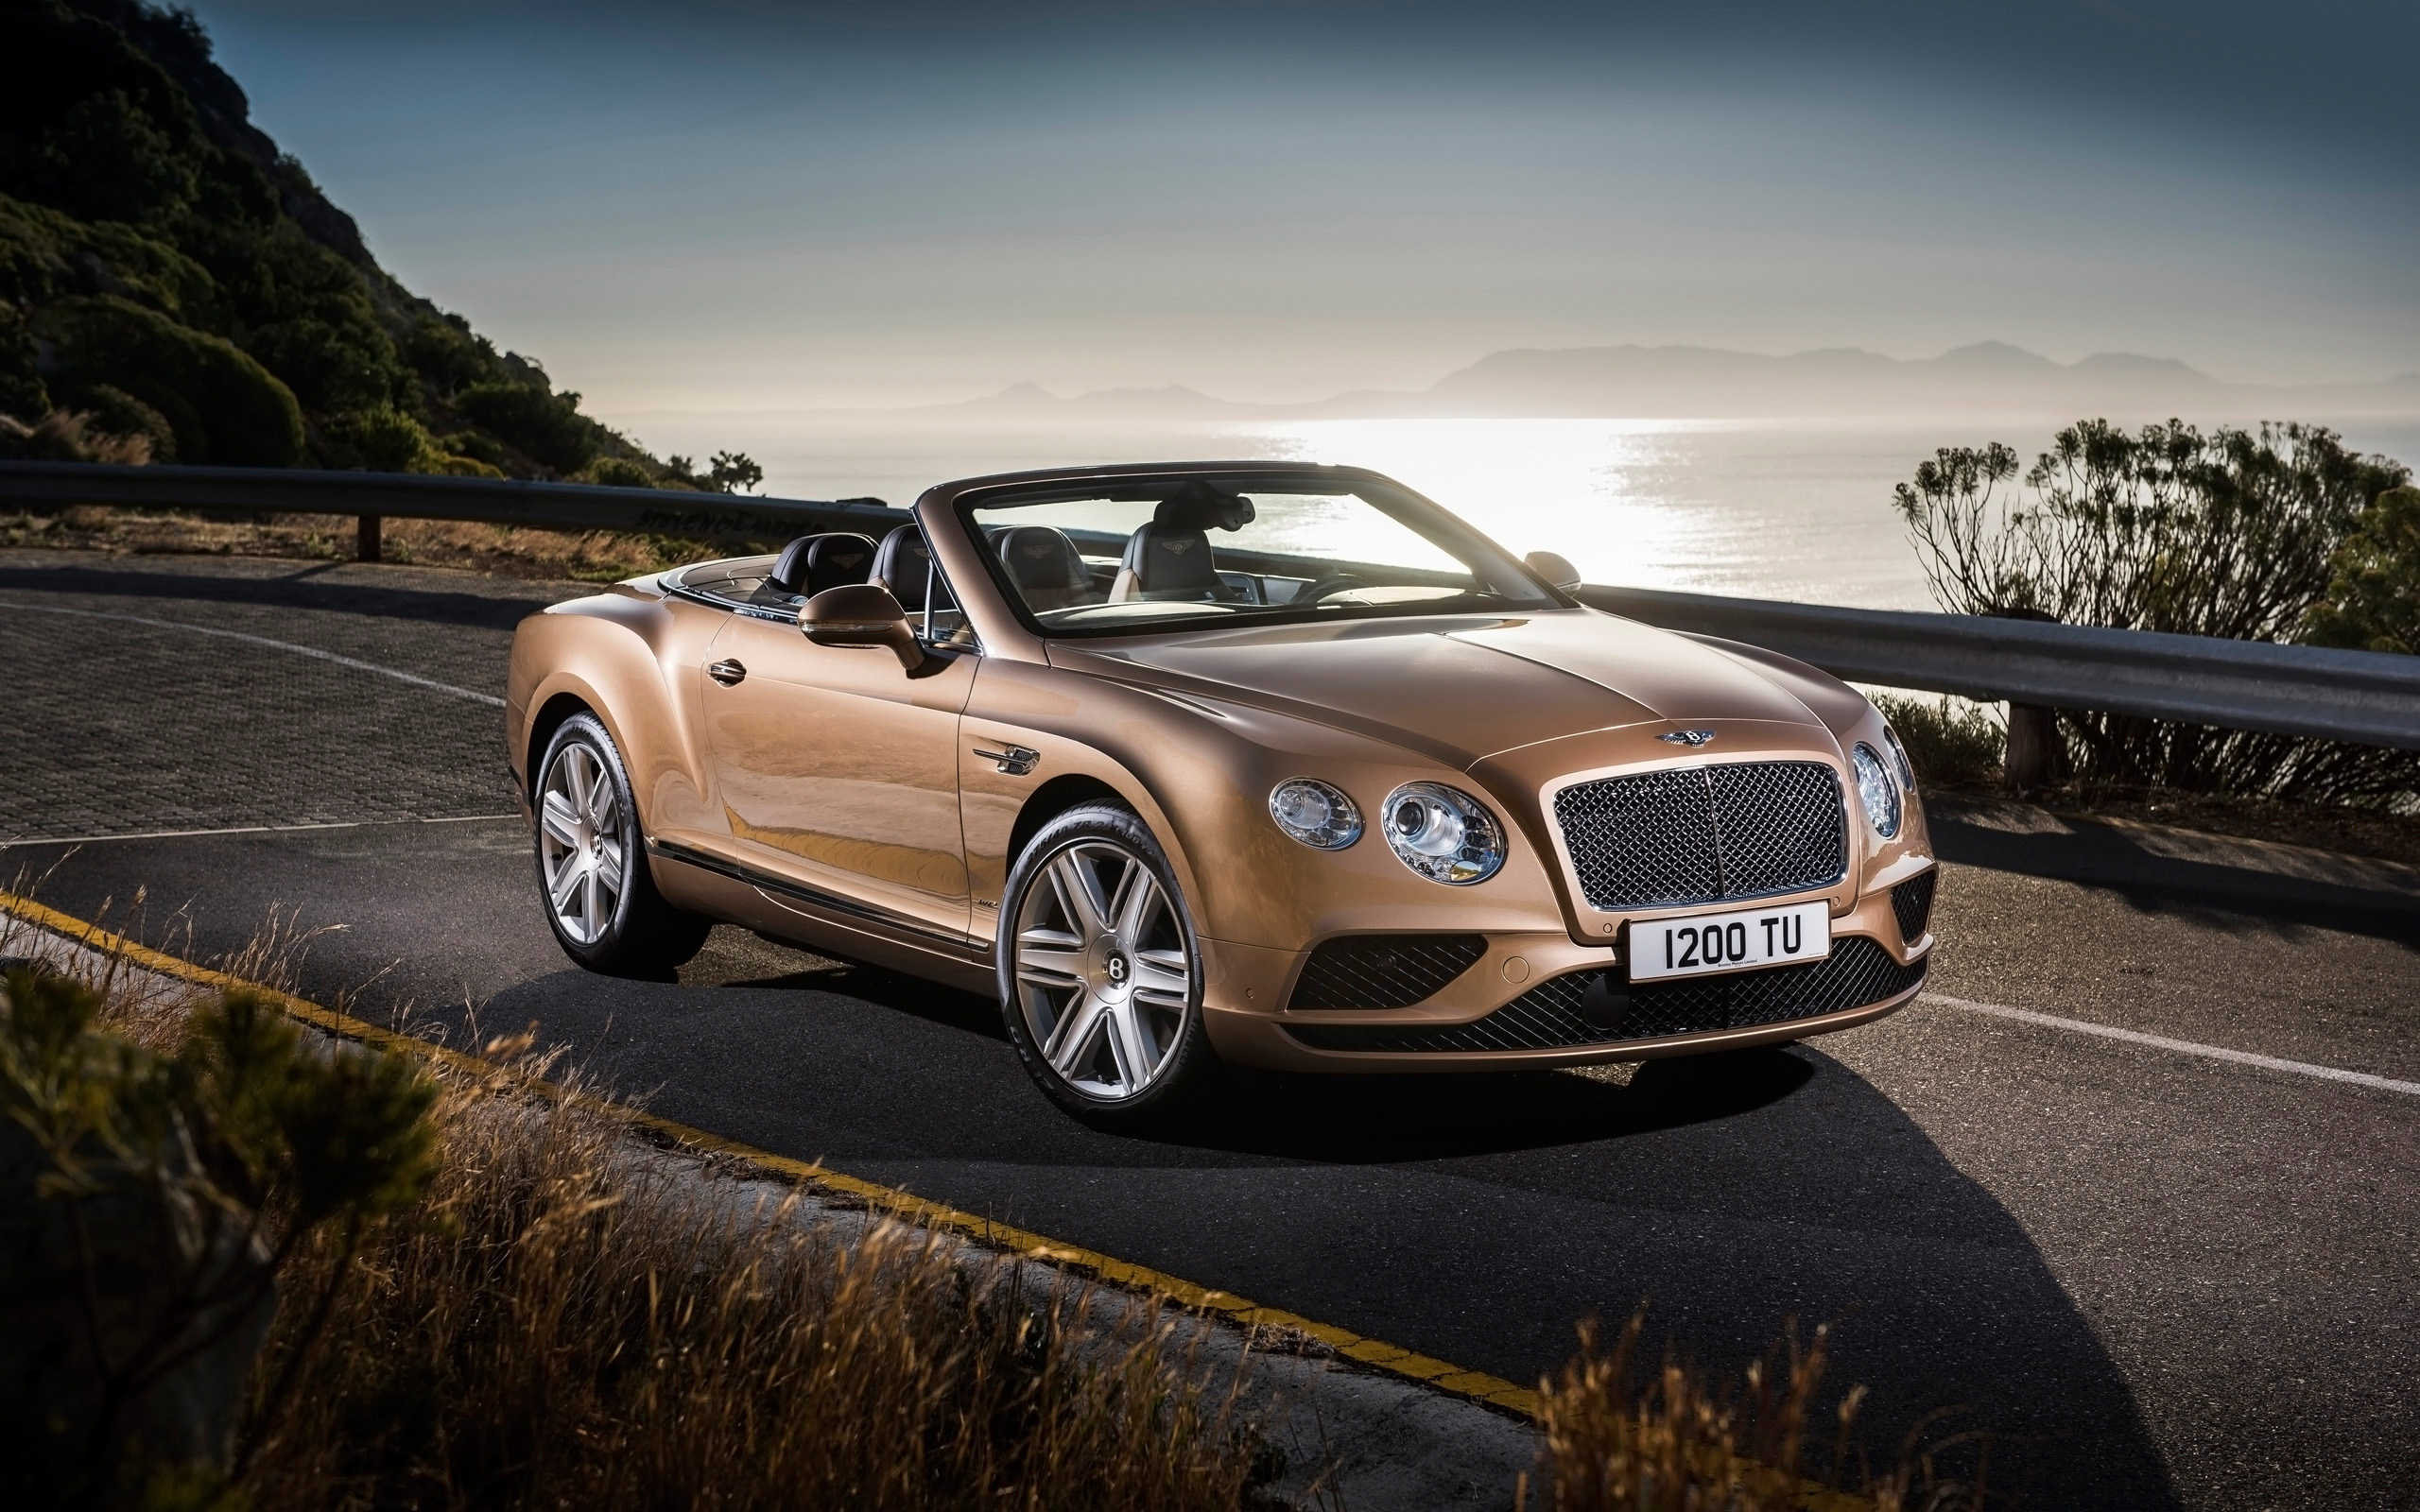 Bentley Continental Gt Convertible 2015 Wallpaper Hd Car